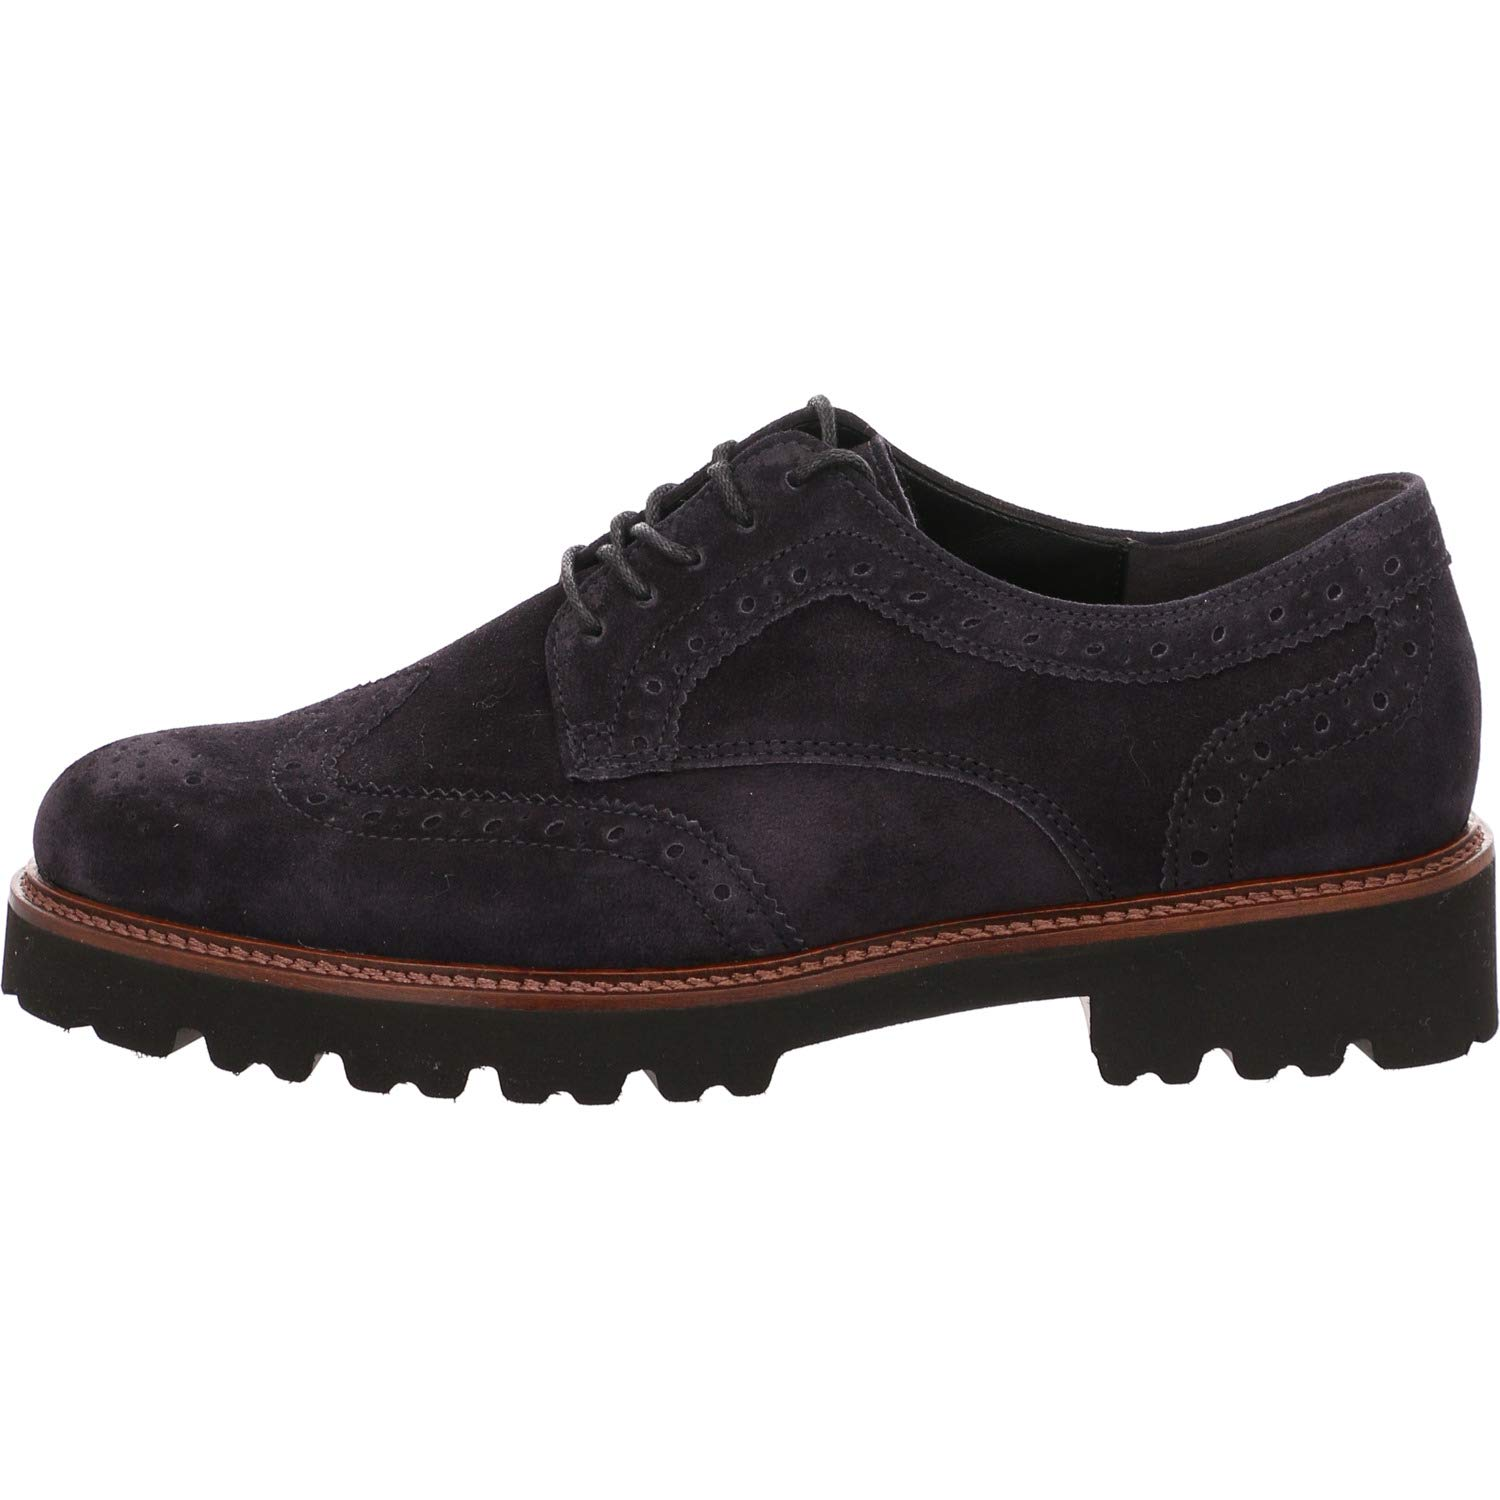 Navy Navy Suede Gabor Chunky Lace Up Sweep - 91.464  achats de mode en ligne